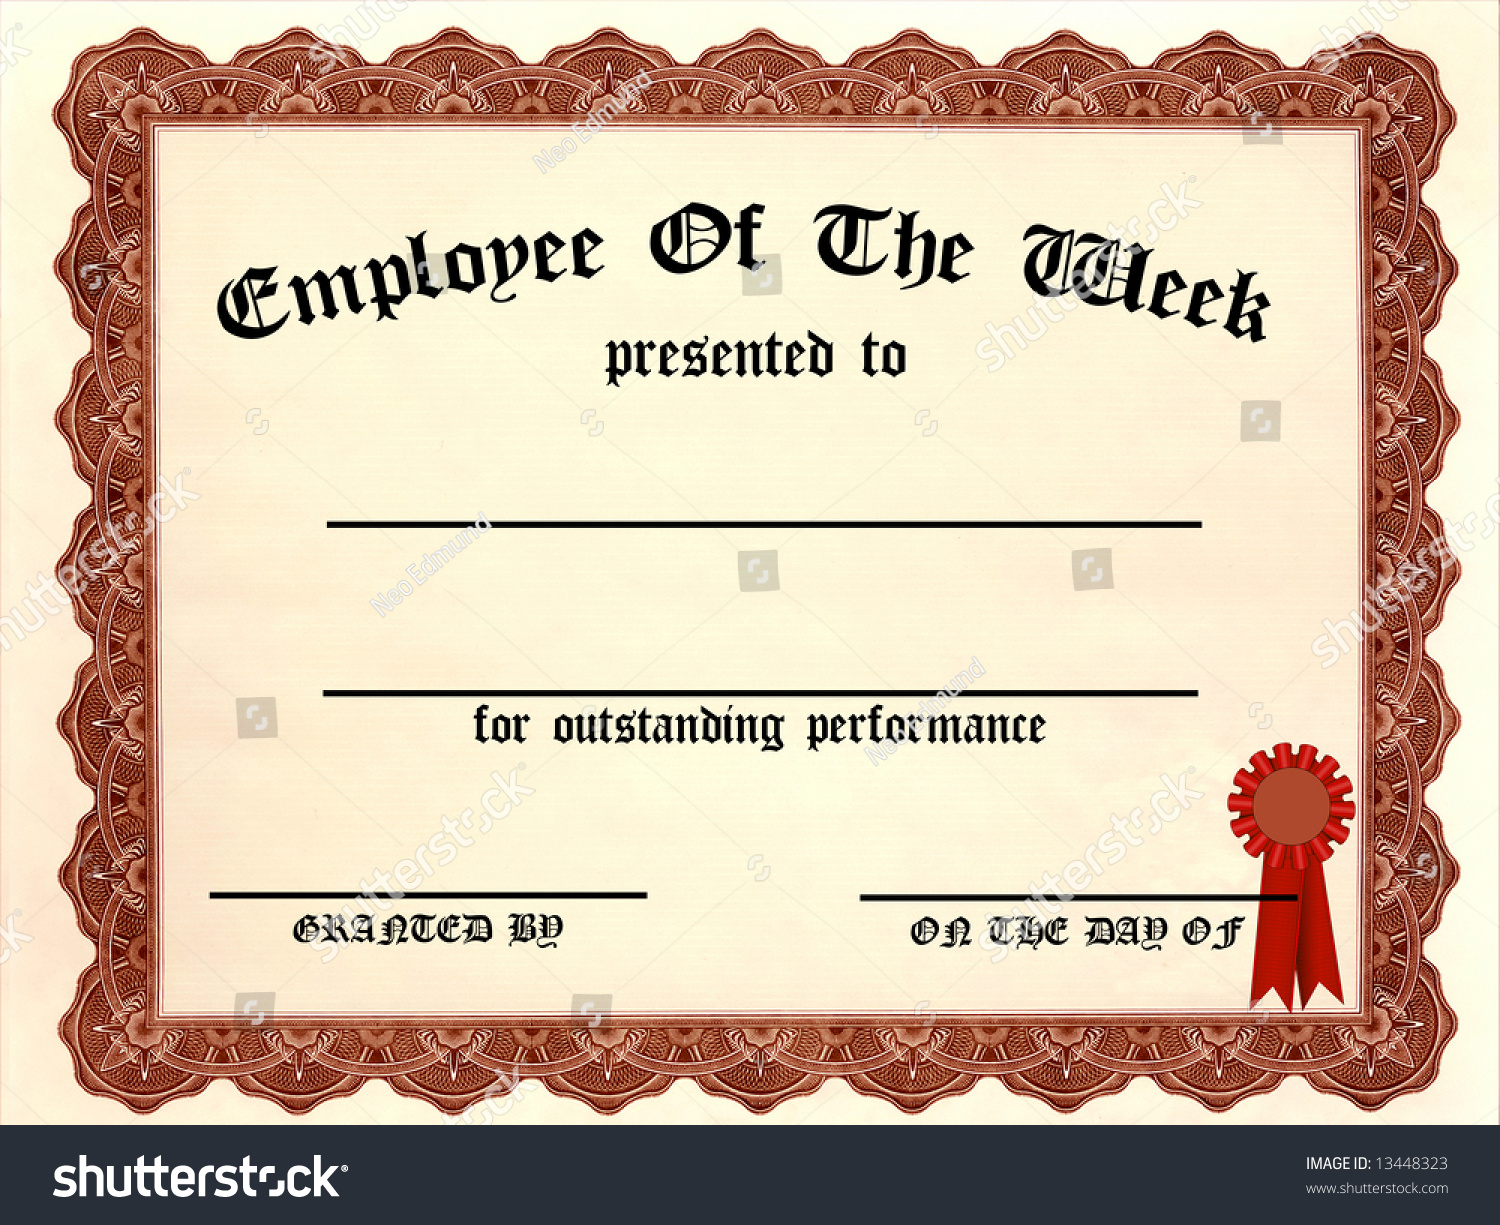 Employee Of The Week Certificate - Fill In The Blanks Stock Photo ...